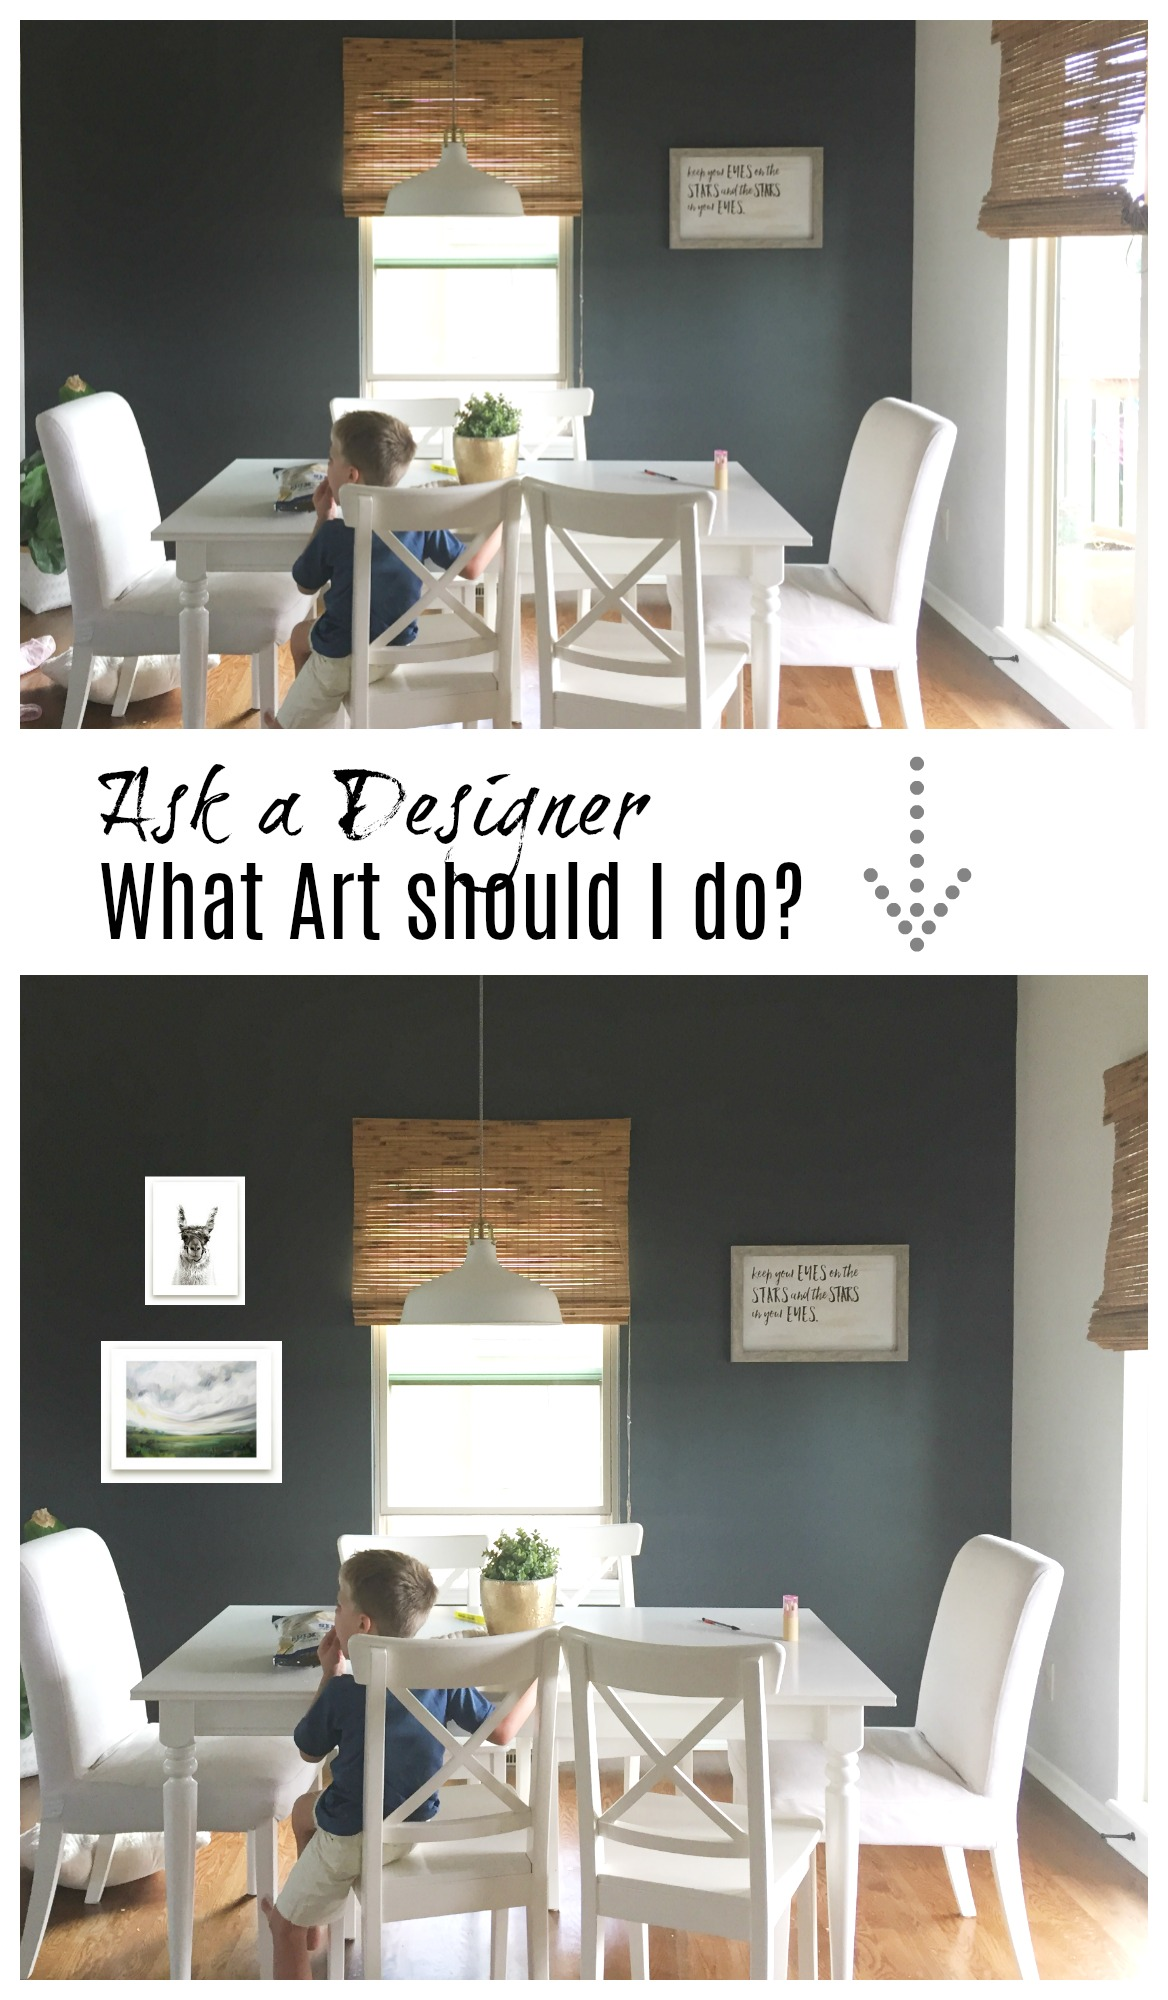 Ask a Designer Series...What Art would you do?